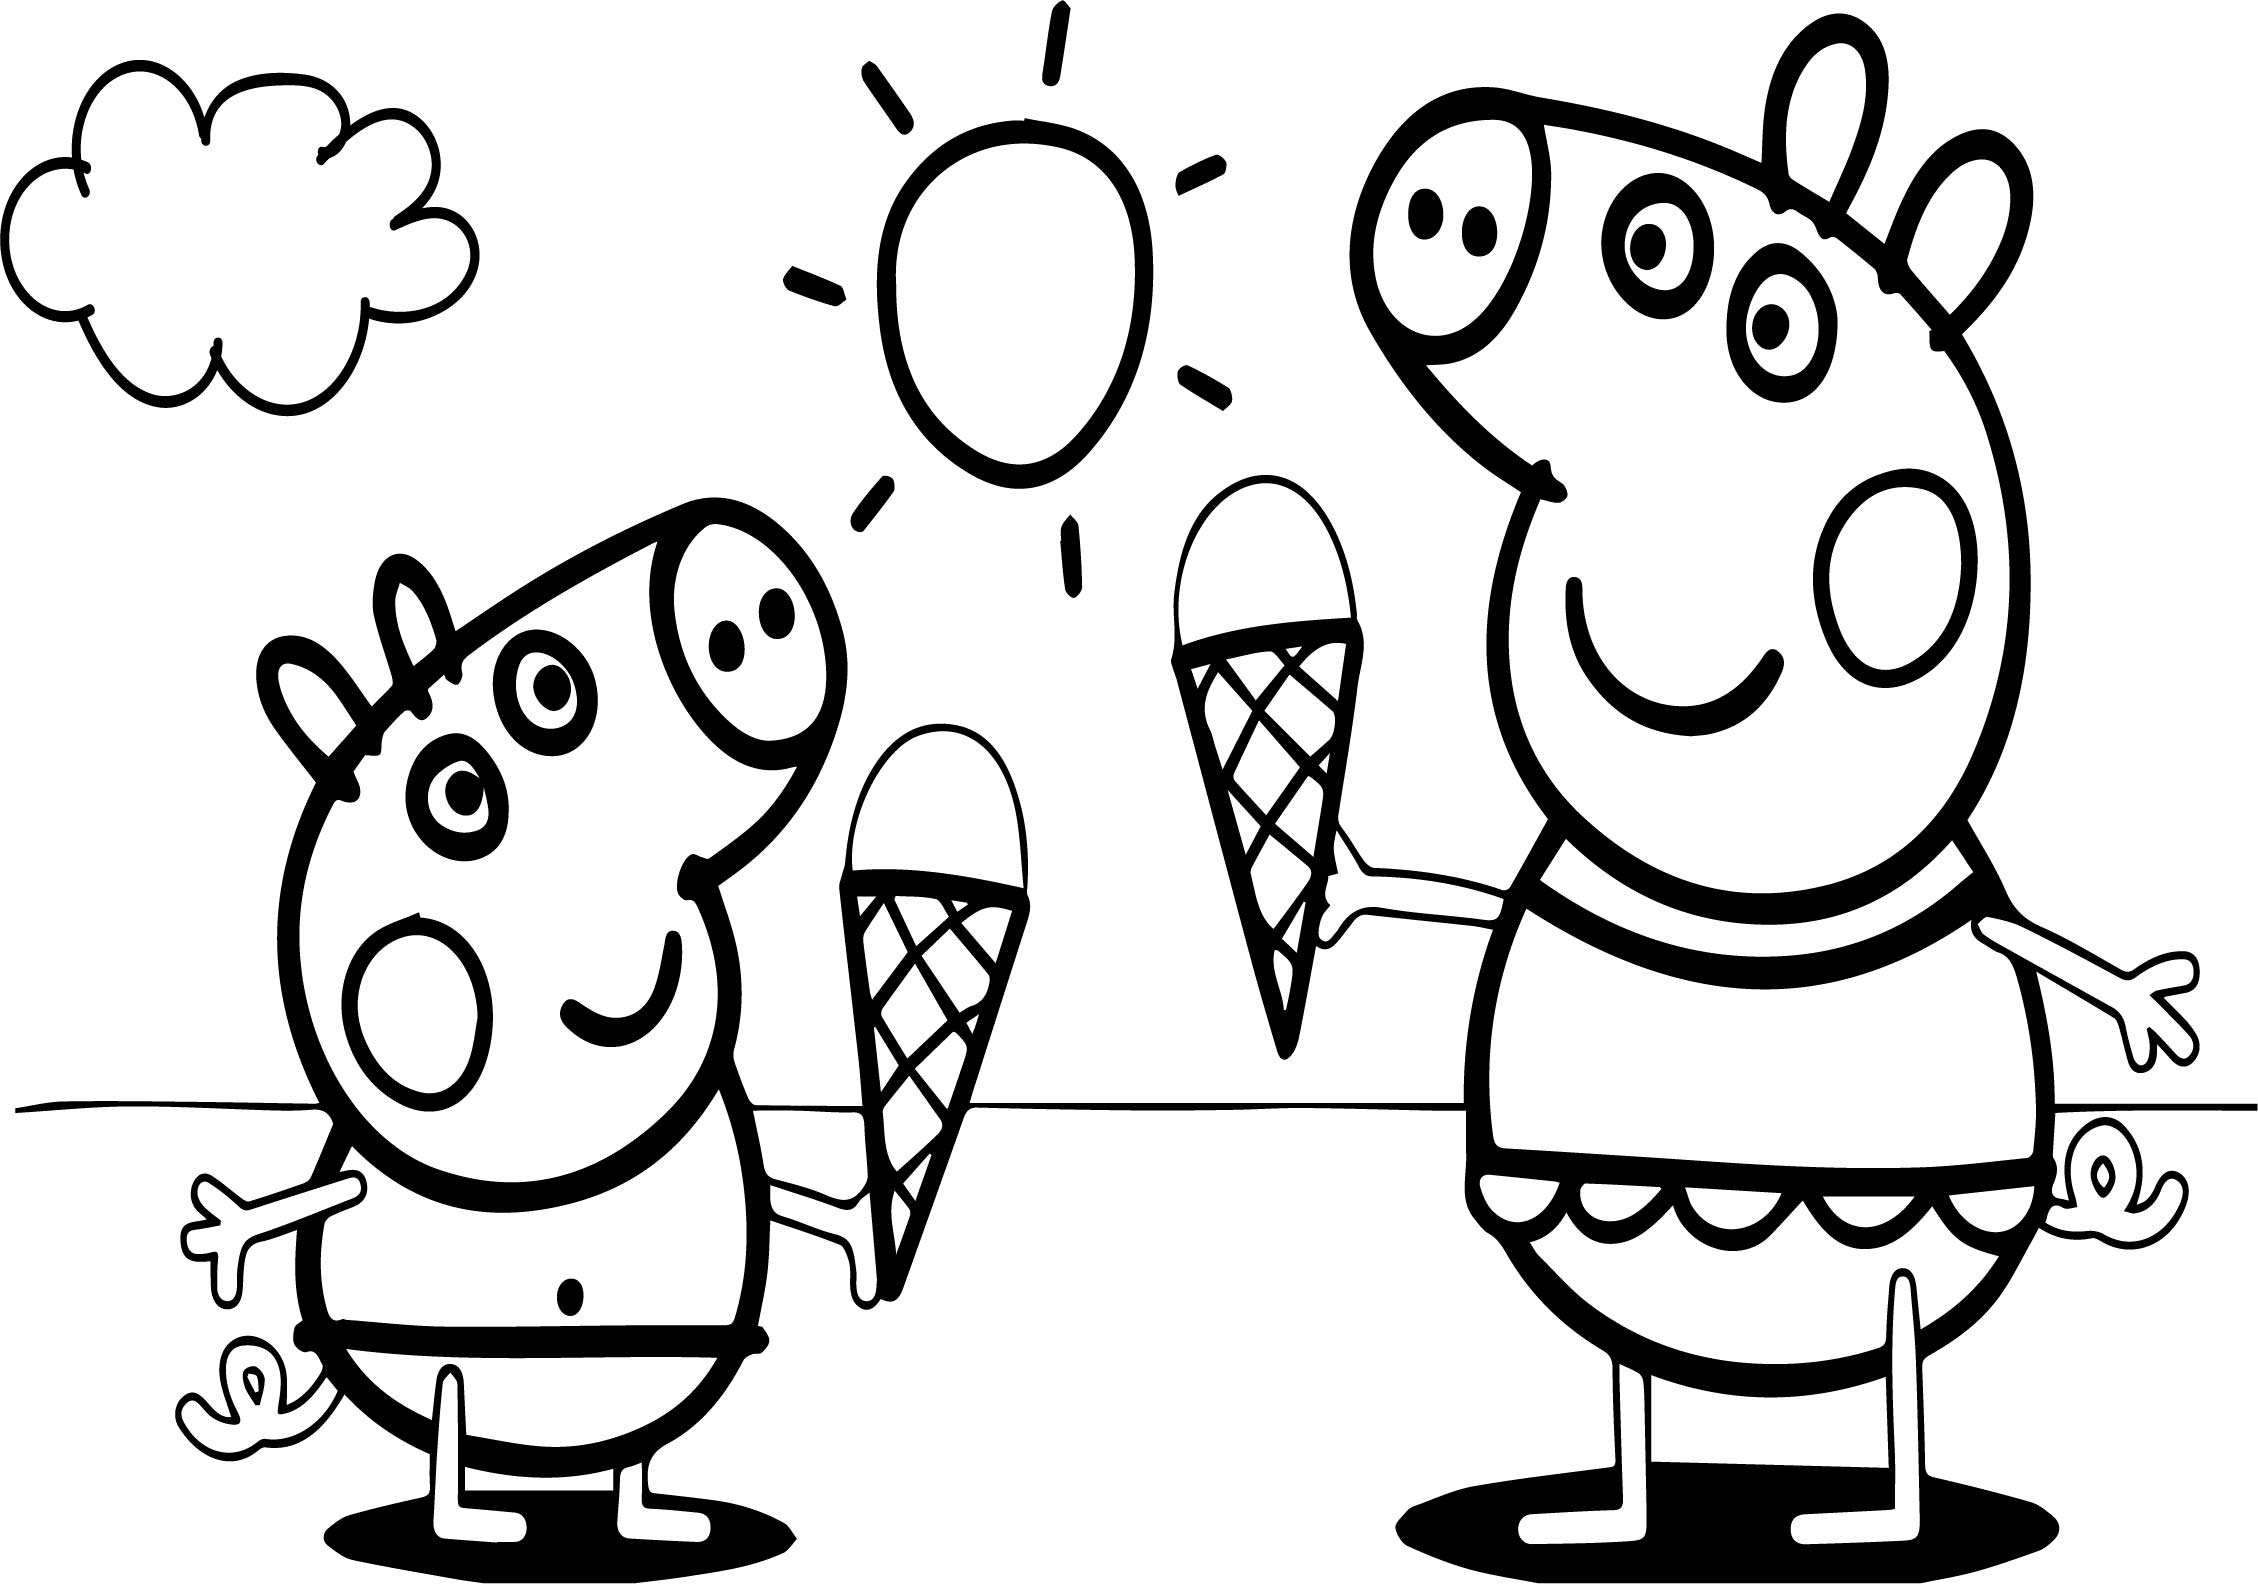 peppa pig coloring in 30 printable peppa pig coloring pages you wont find pig peppa in coloring